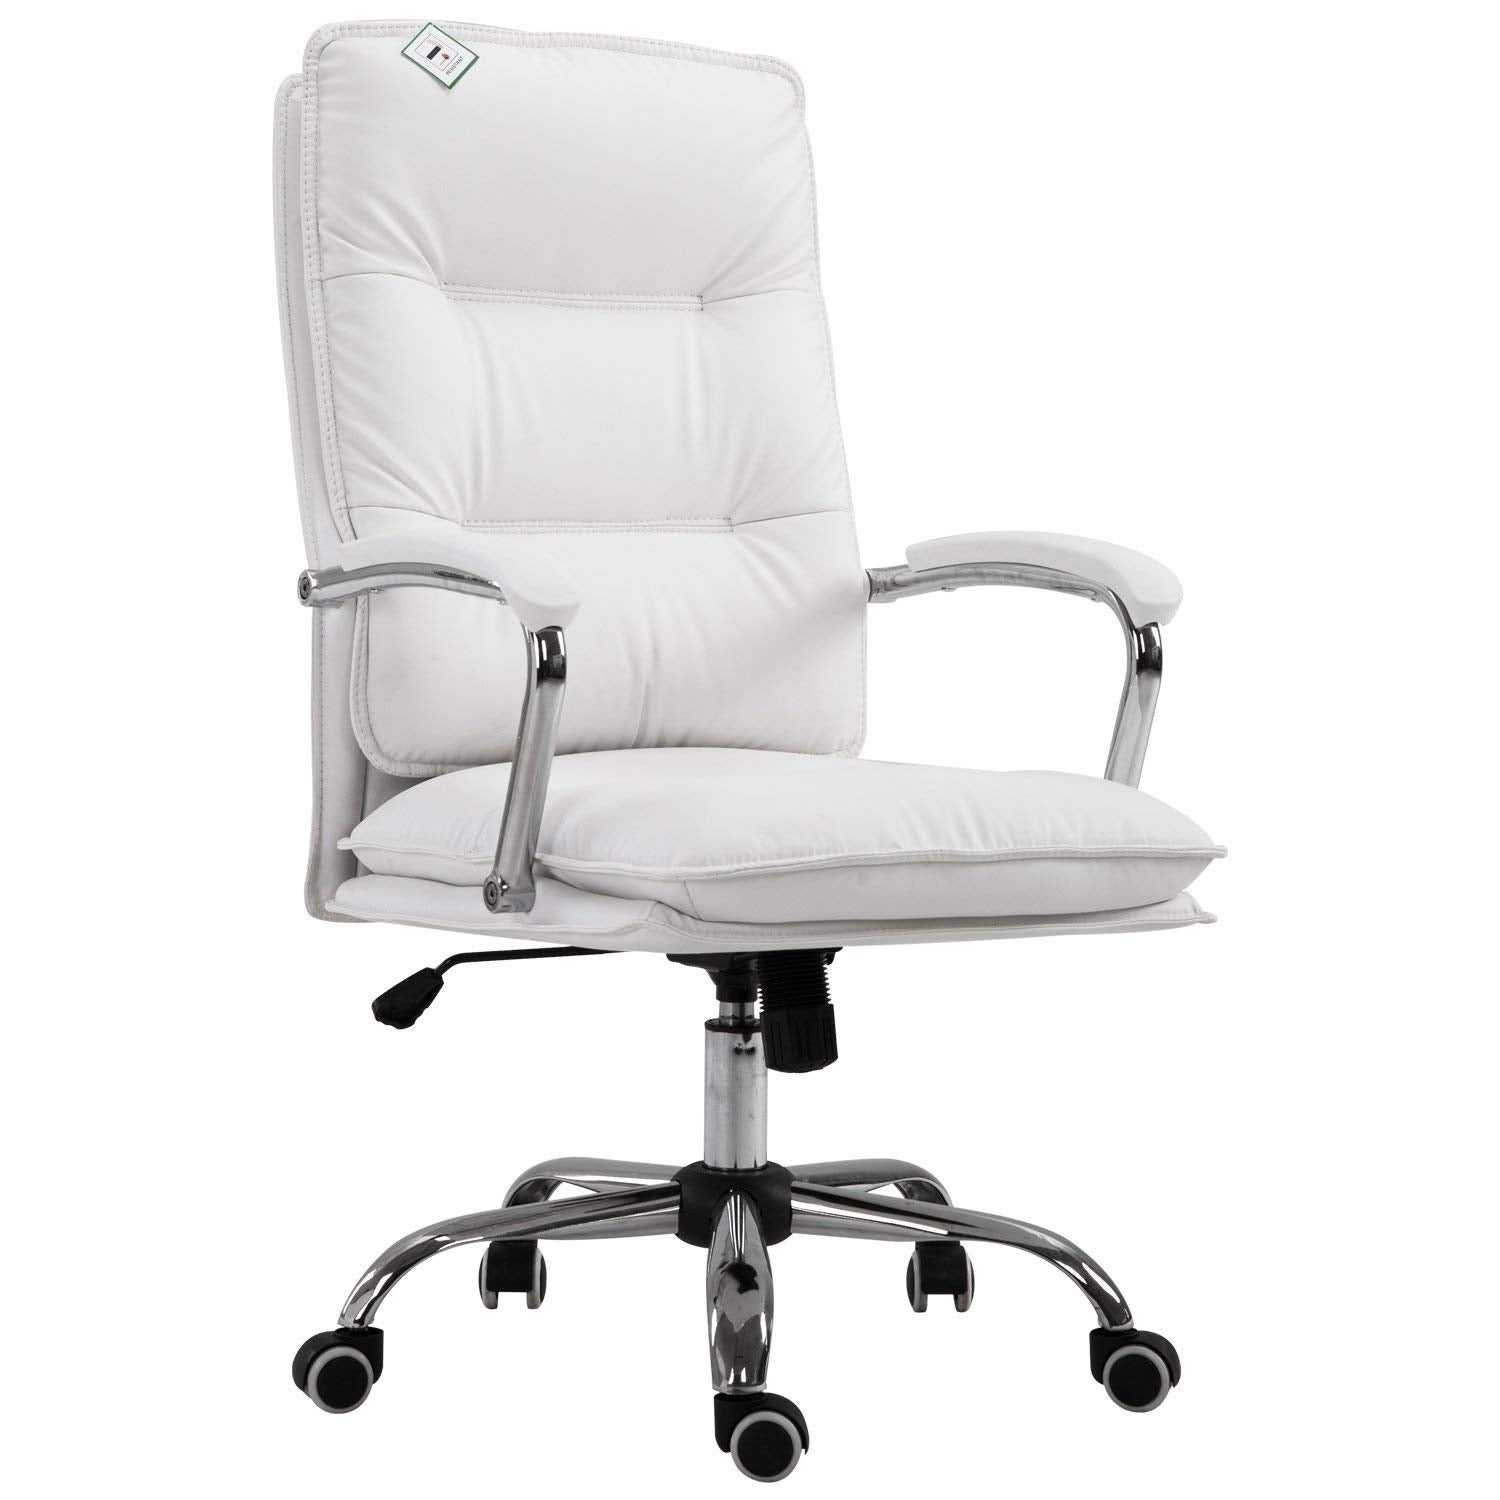 Shop Homcom High Back Pu Leather Executive Home Office Chair With Lumbar Support White Overstock 23051325